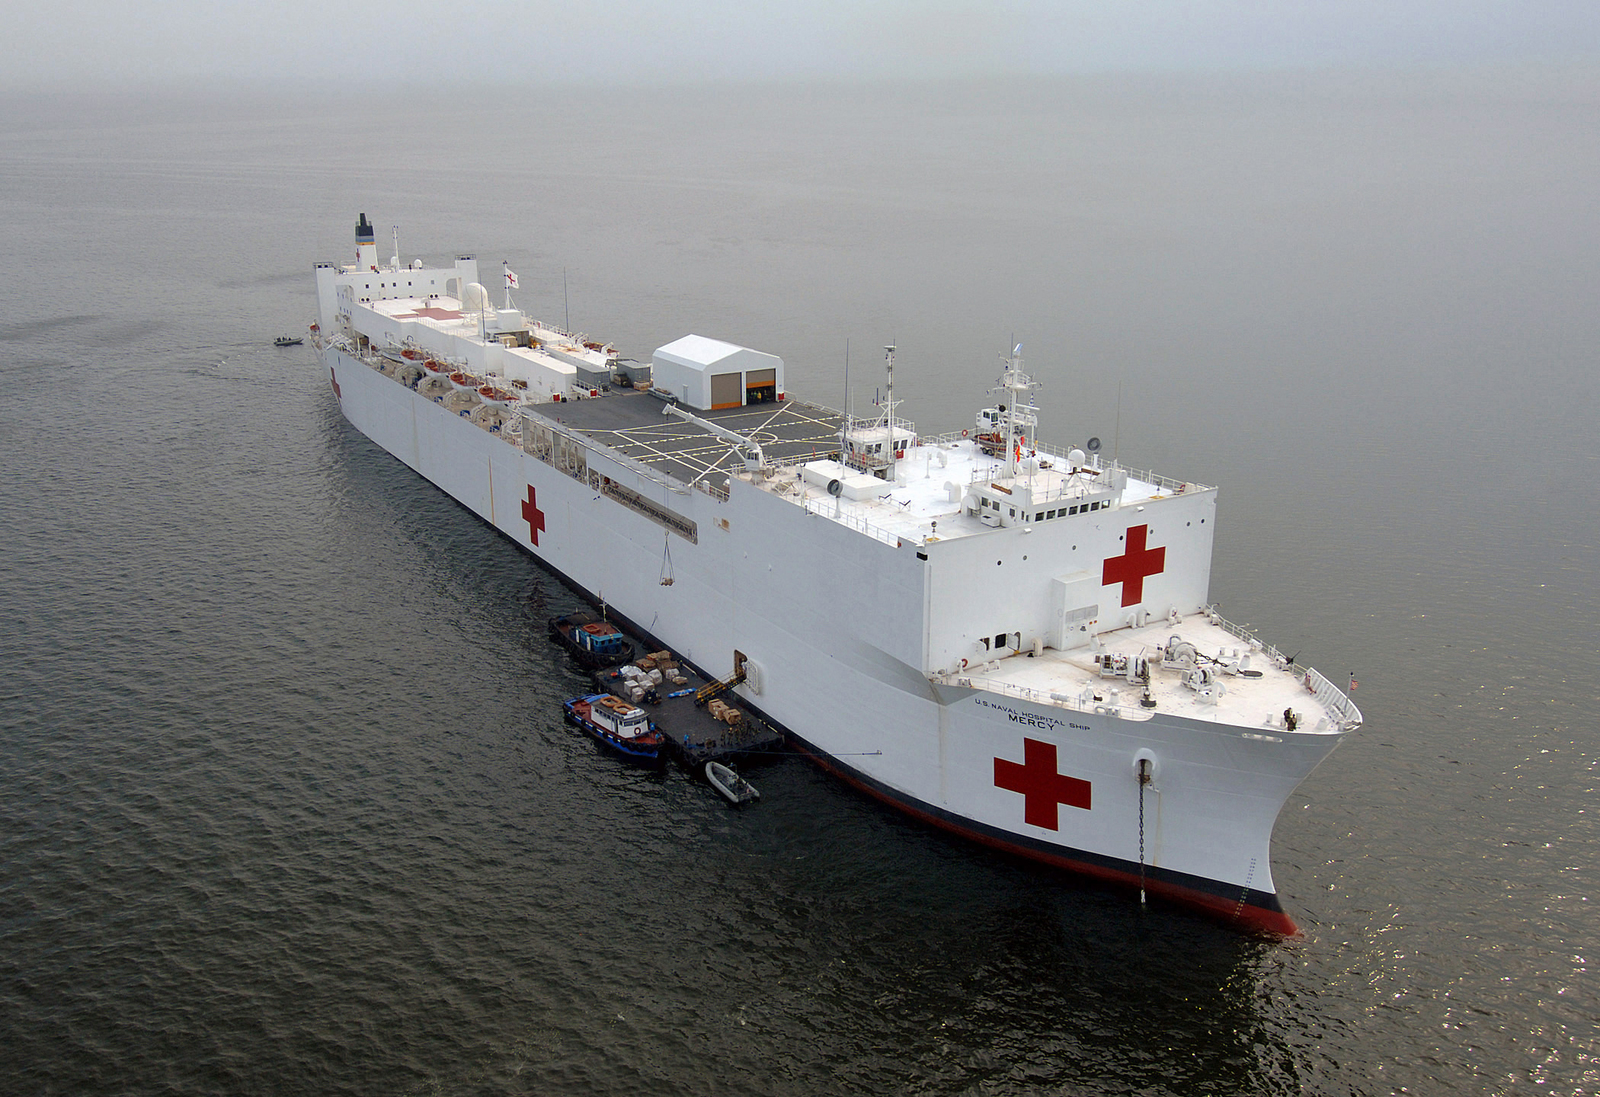 An aerial quarter starboard bow view of the US Navy (USN) Military Sealift Command (MSC), Hospital Ship, USNS MERCY (T-AH 19), resting at anchor in the Philippine Sea off of the coast of the Philippine capitol of Manila. The USNS MERCY is on a scheduled five-month deployment to deliver aid and humanitarian assistance to the Pacific Islands, and Southeast Asia